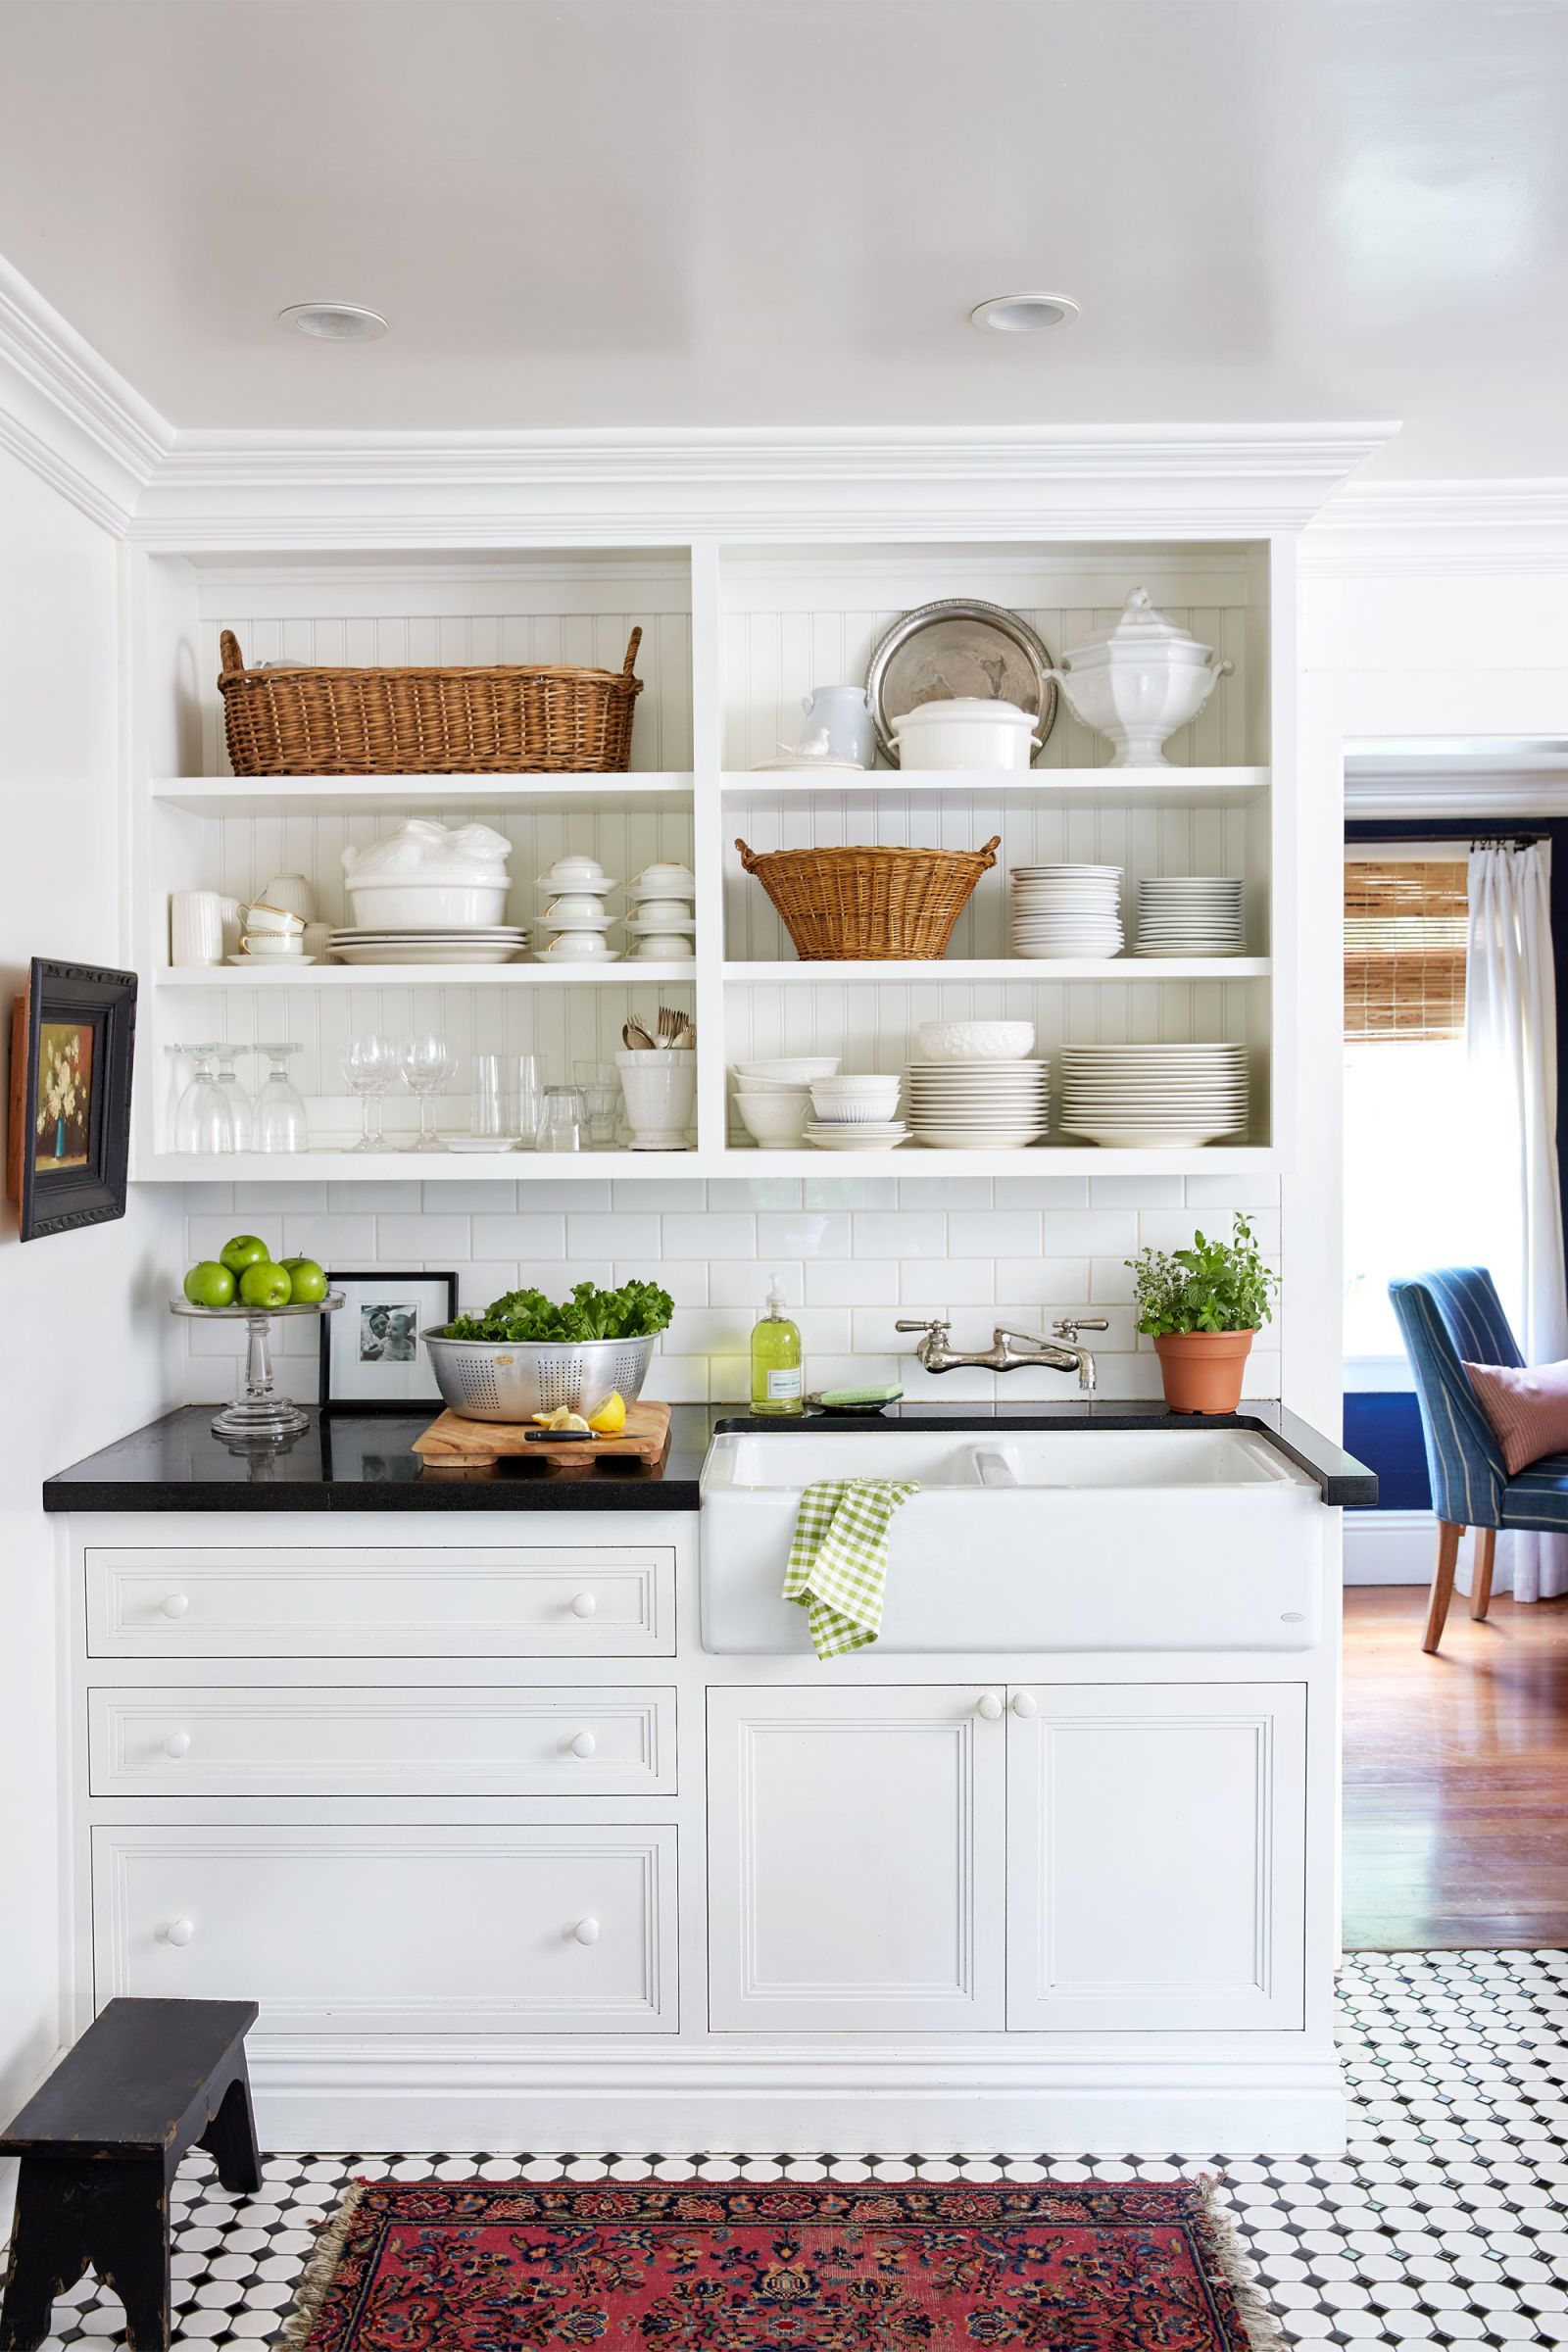 10 Must Follow Rules For Making A Small Space Beautiful Small